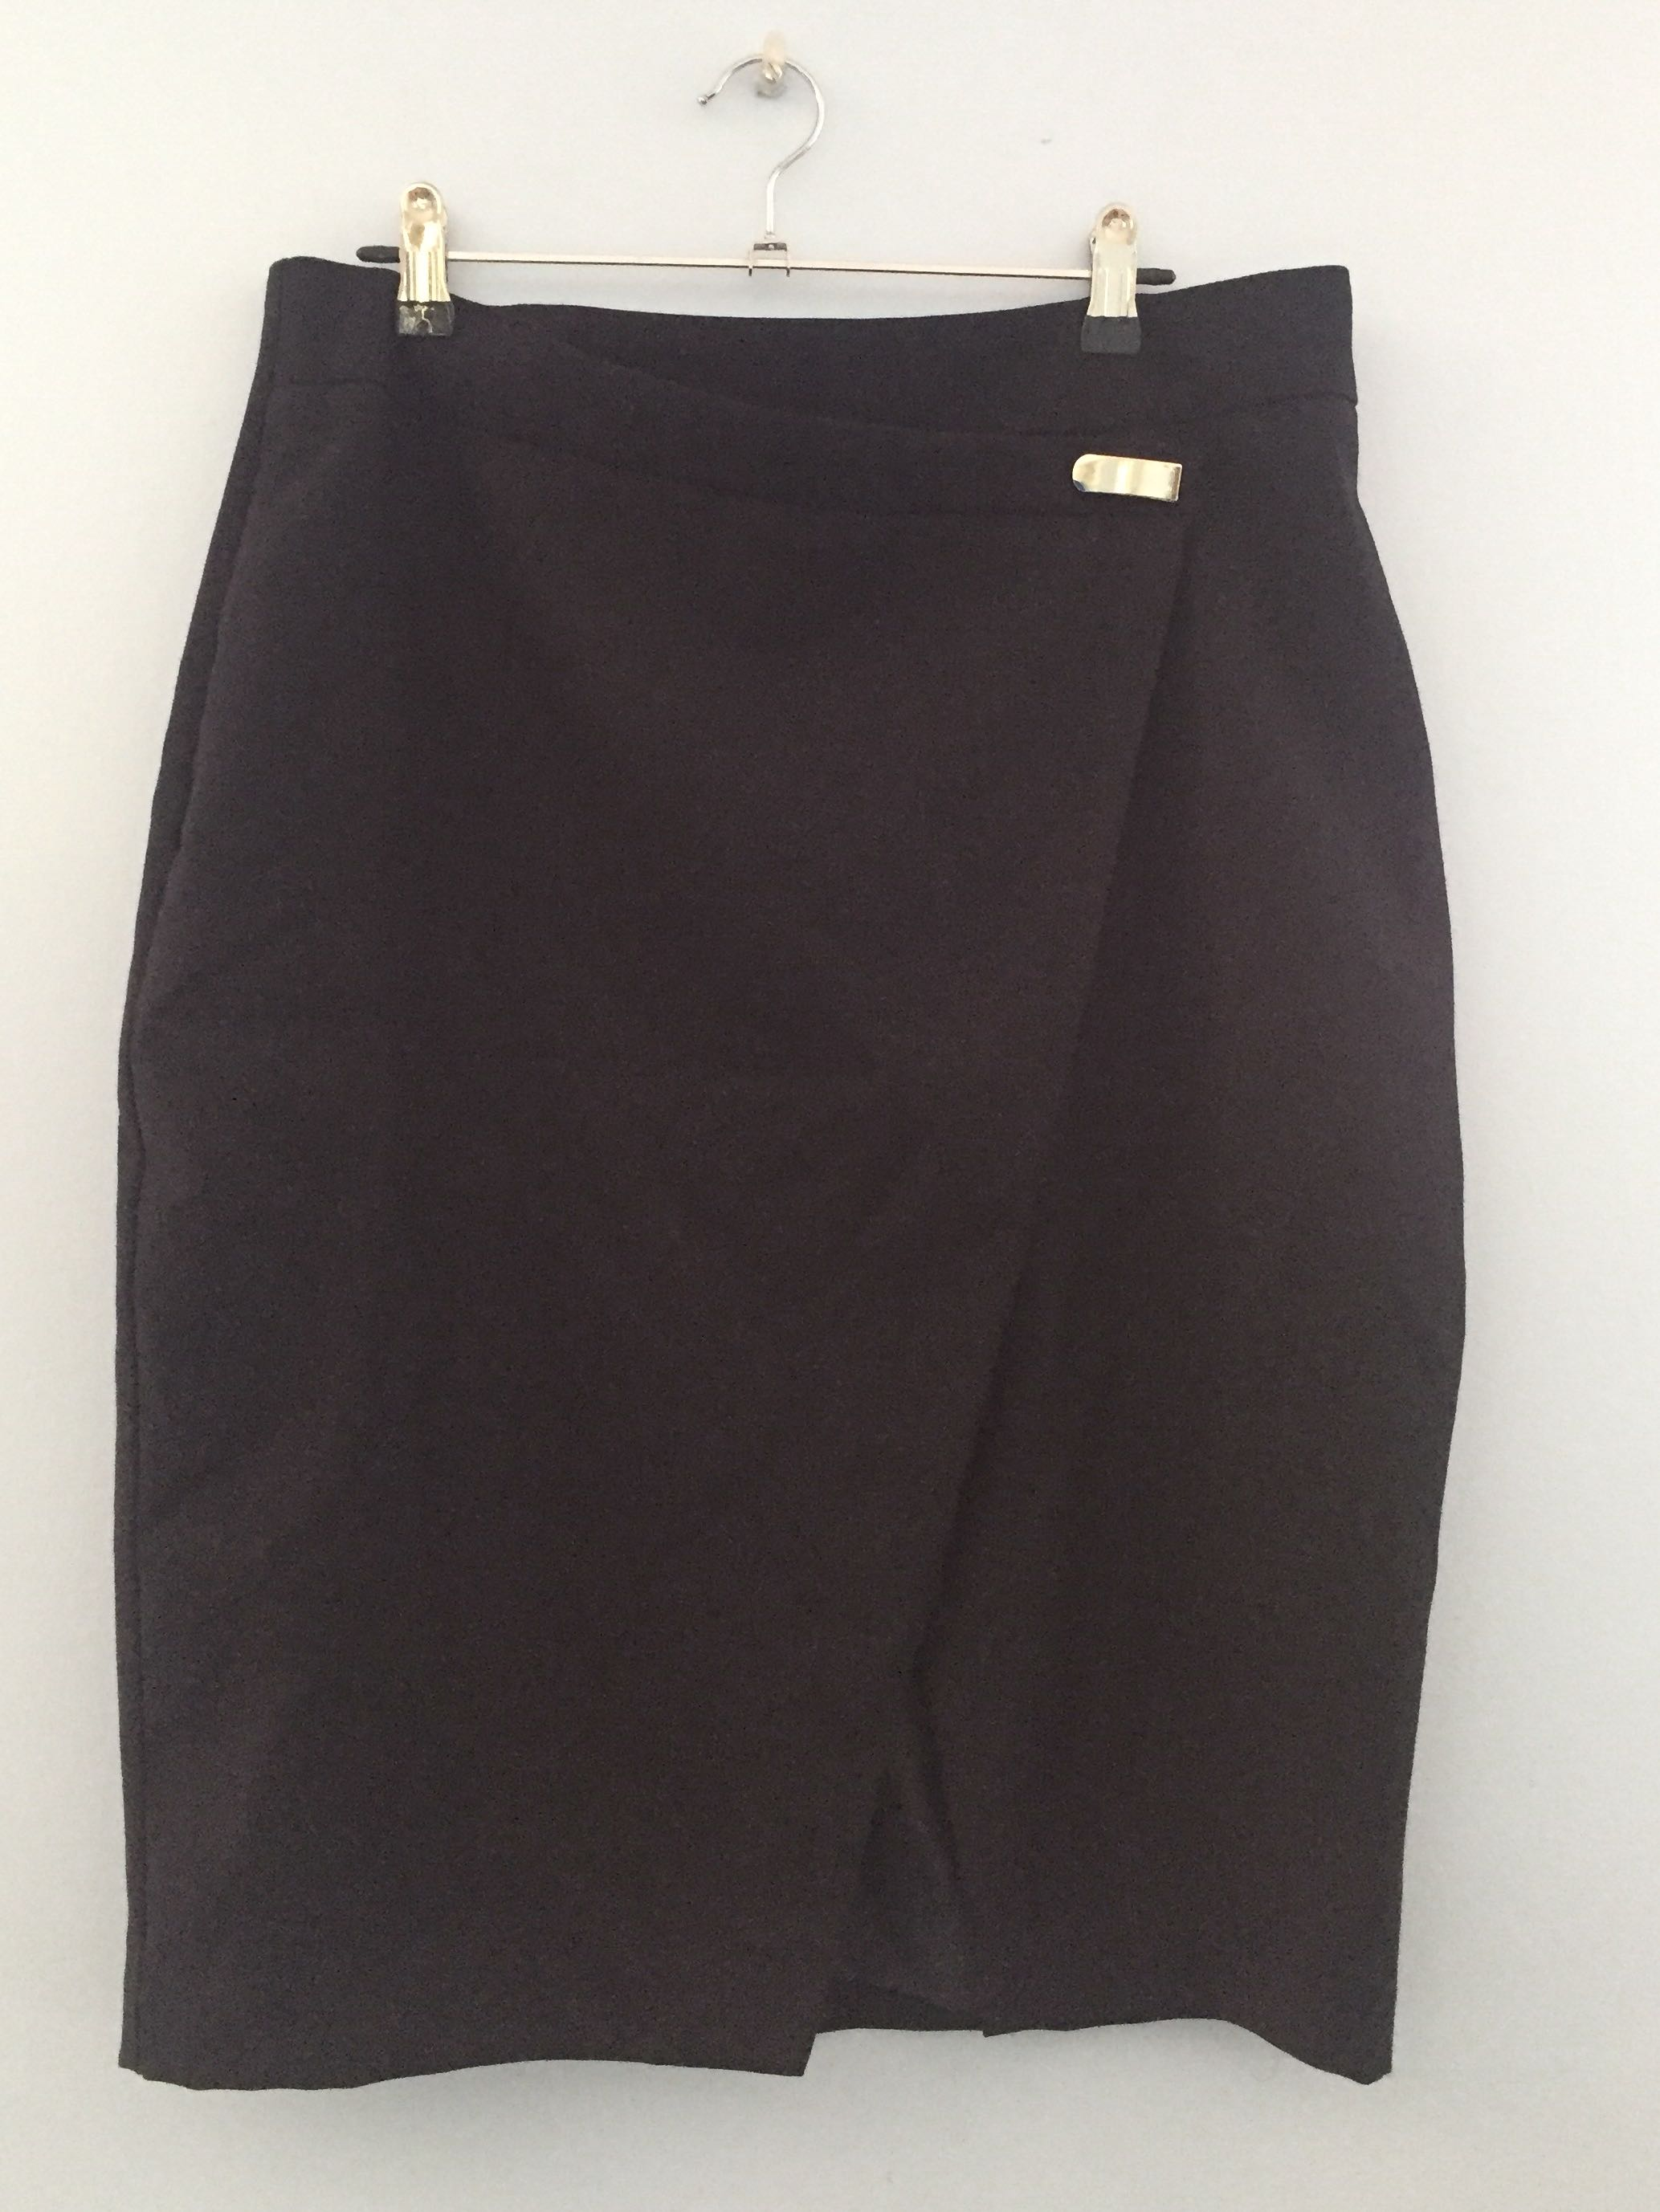 Navy Cross Over Skirt Size 14